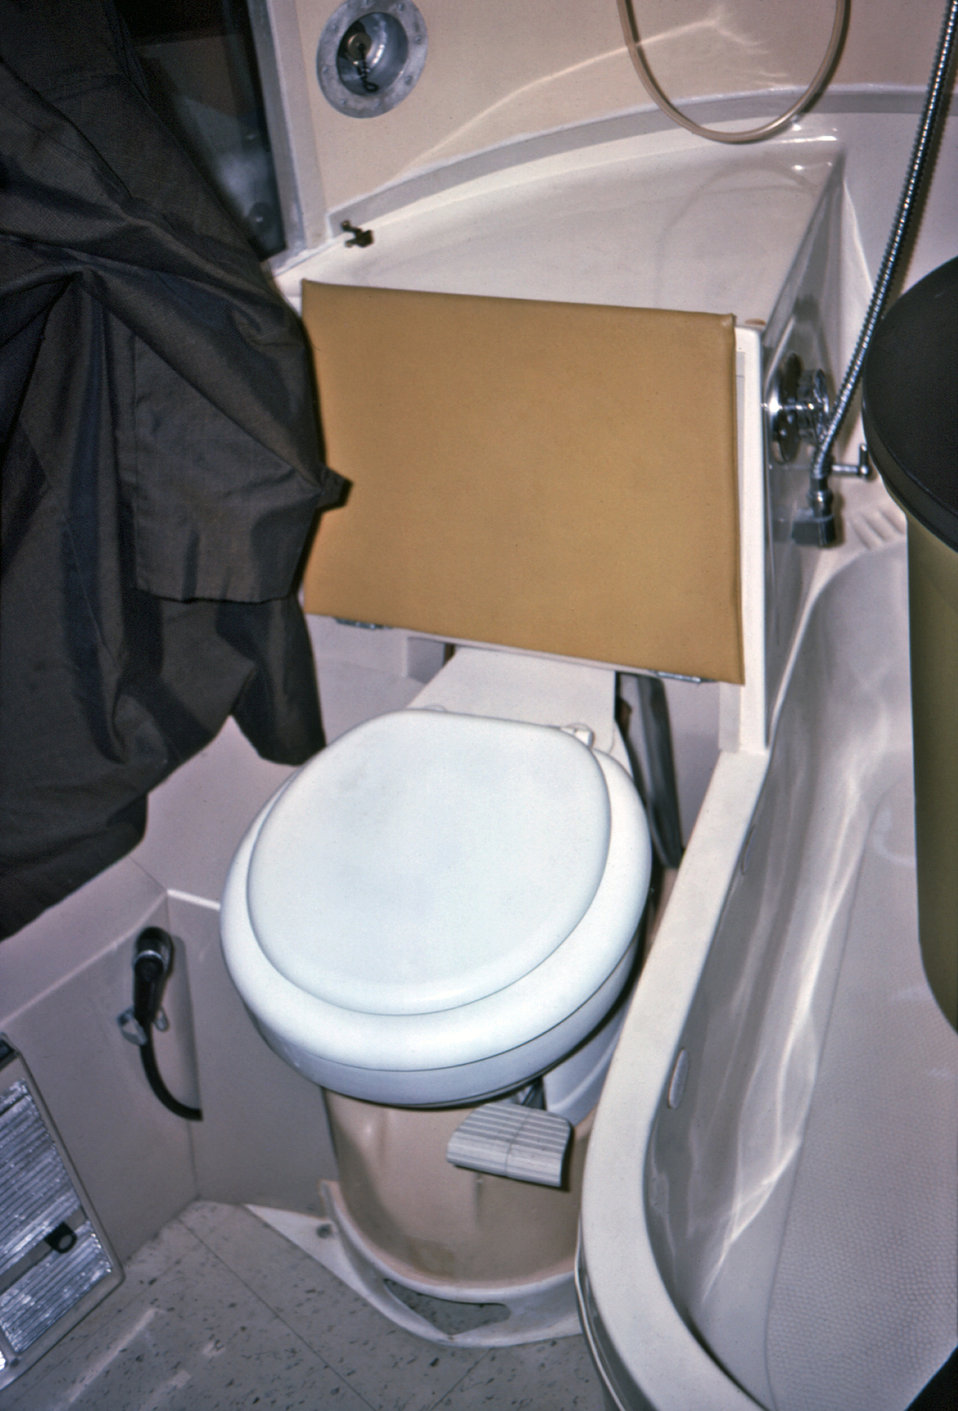 Shown here was the bathroom toilet and tub located within a mobile quarantine facility (MQF), which was photographed during a 1976 simulated